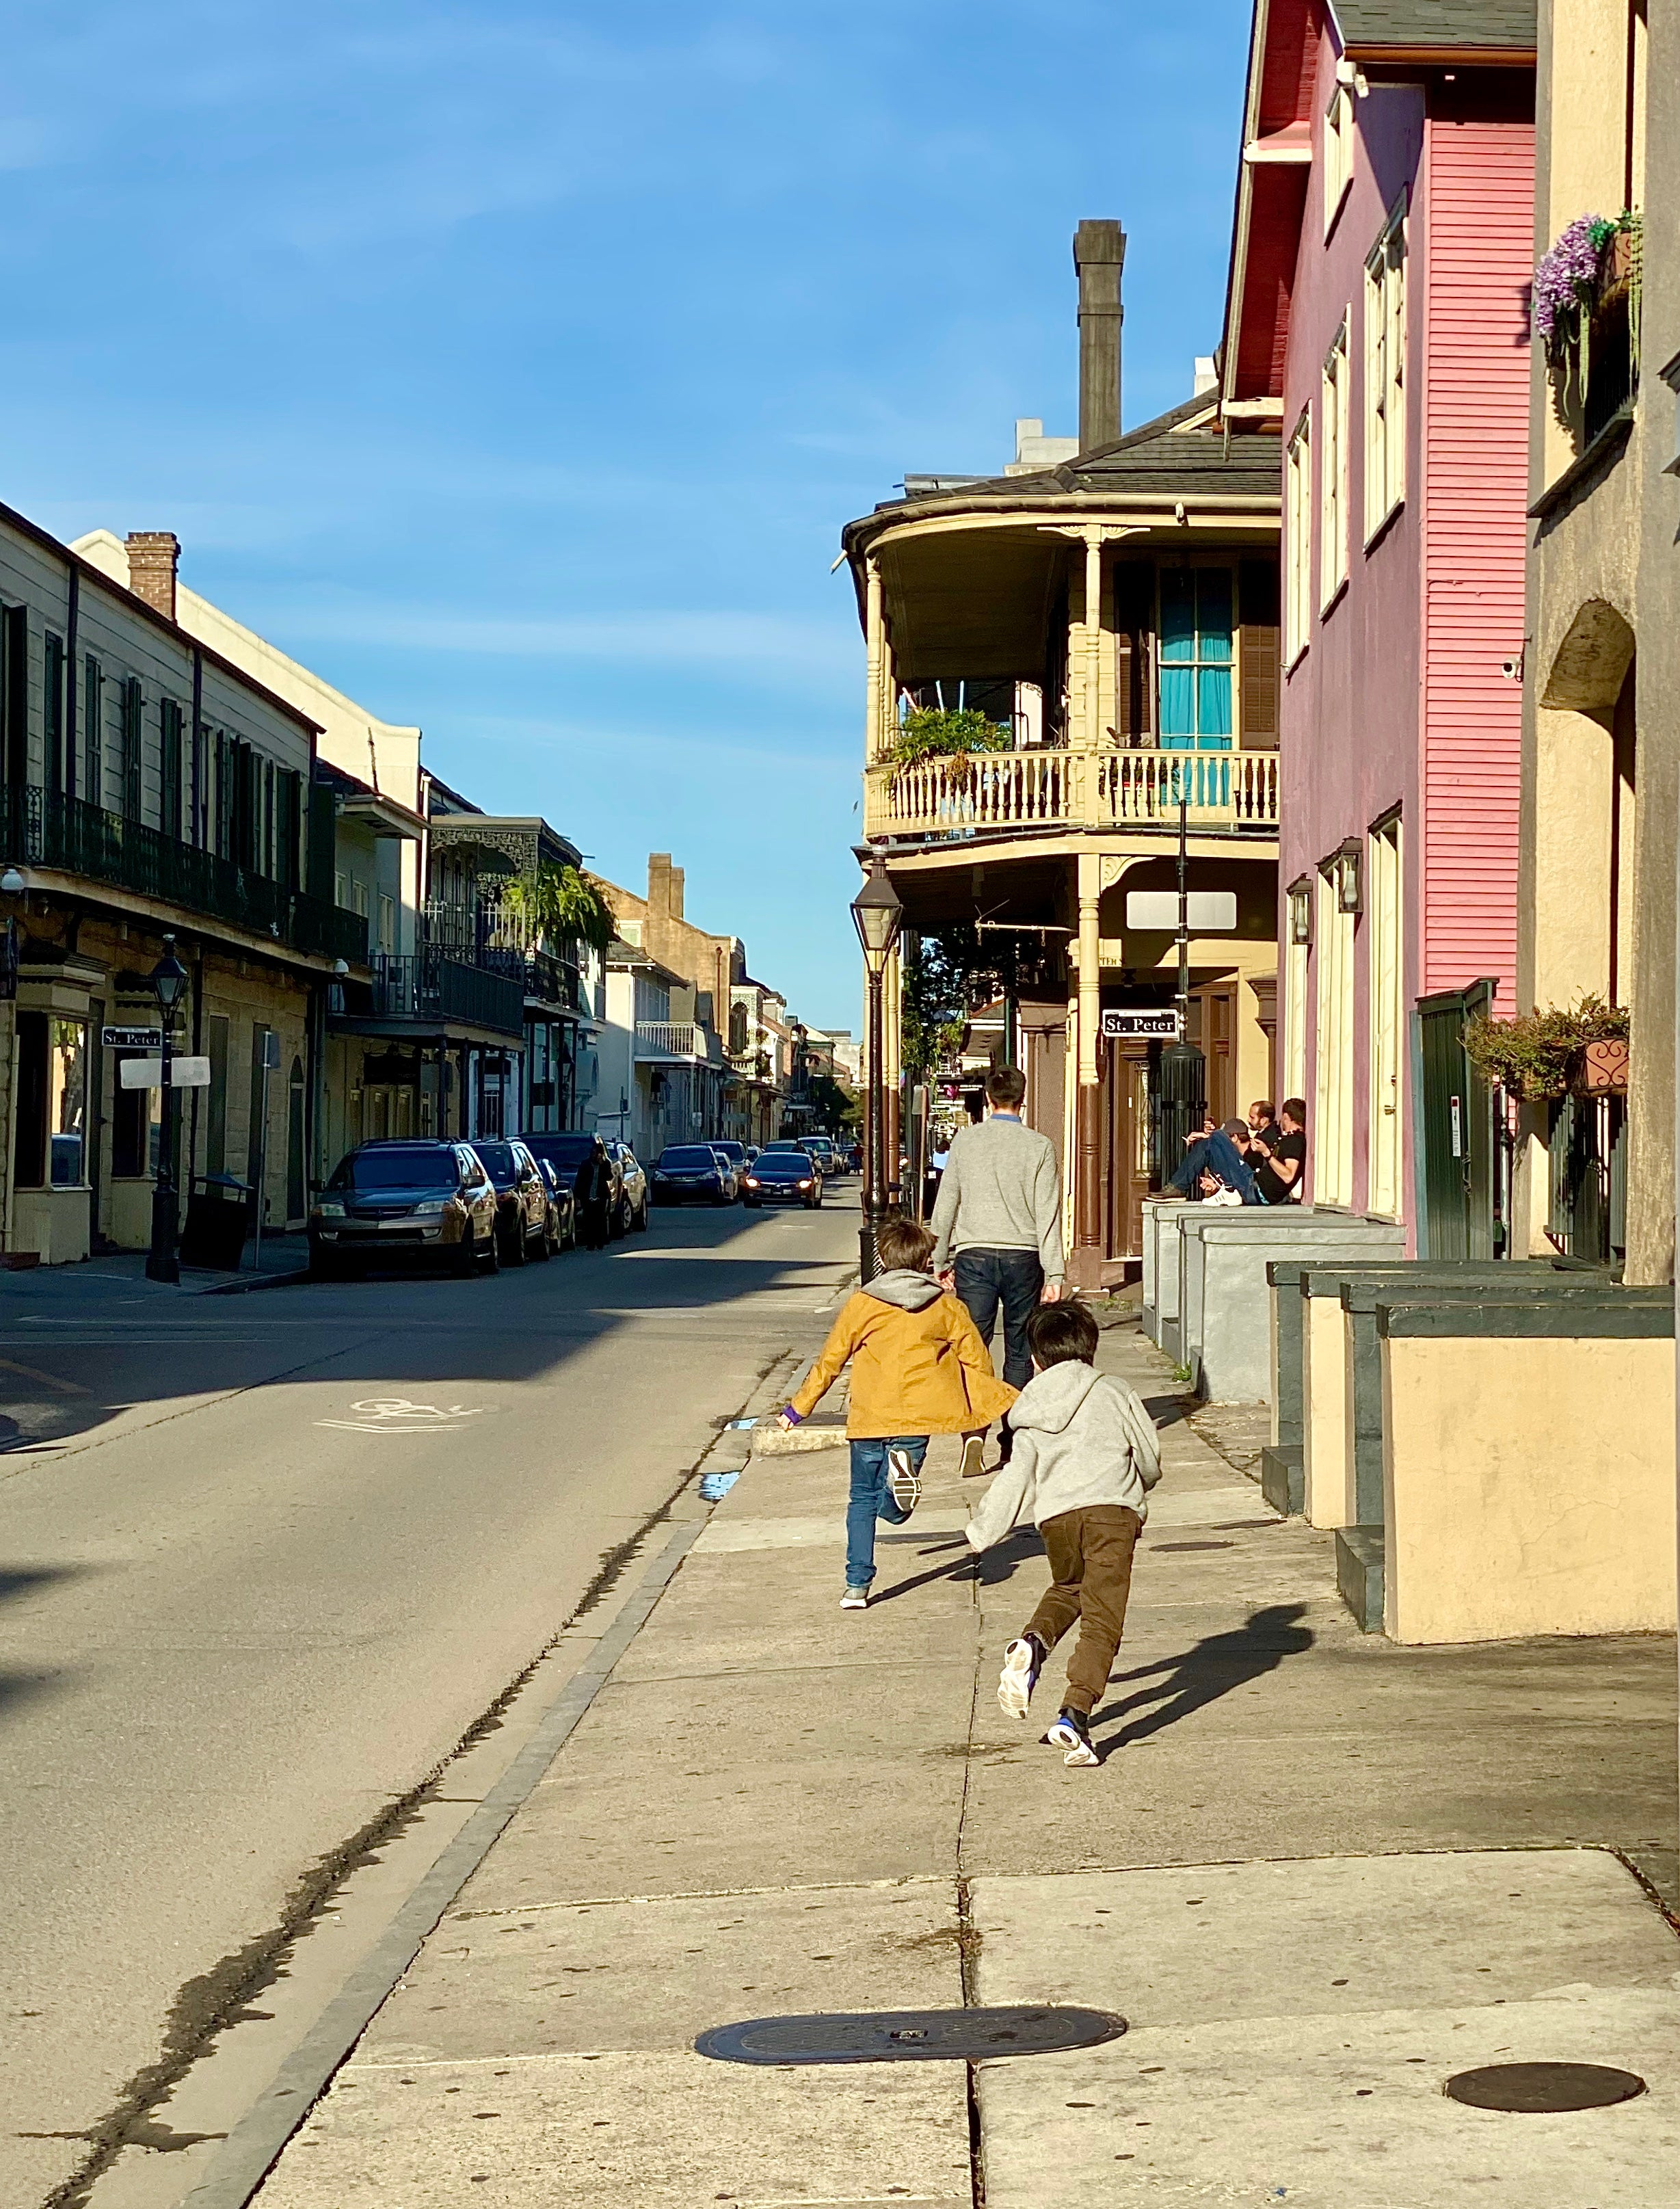 New Orleans Travel Guide: Let the Good Times Roll